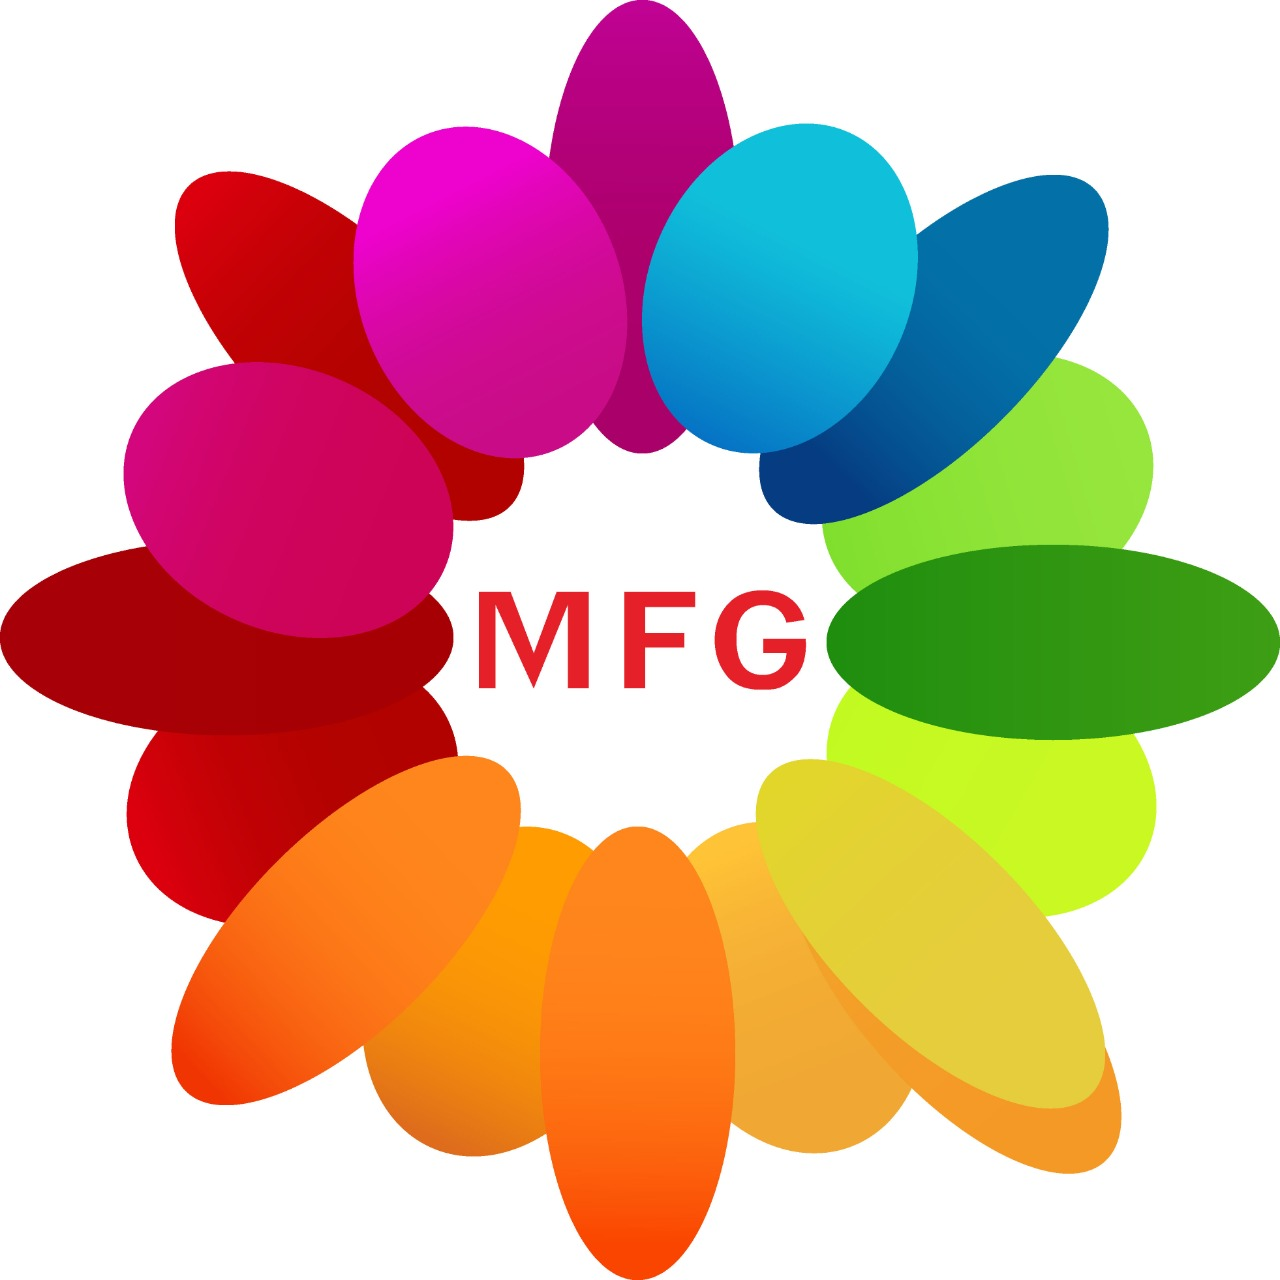 Basket of 20 red roses, valentine day greeting card, 6 inch white teddybear, basket of kitkat chocolates